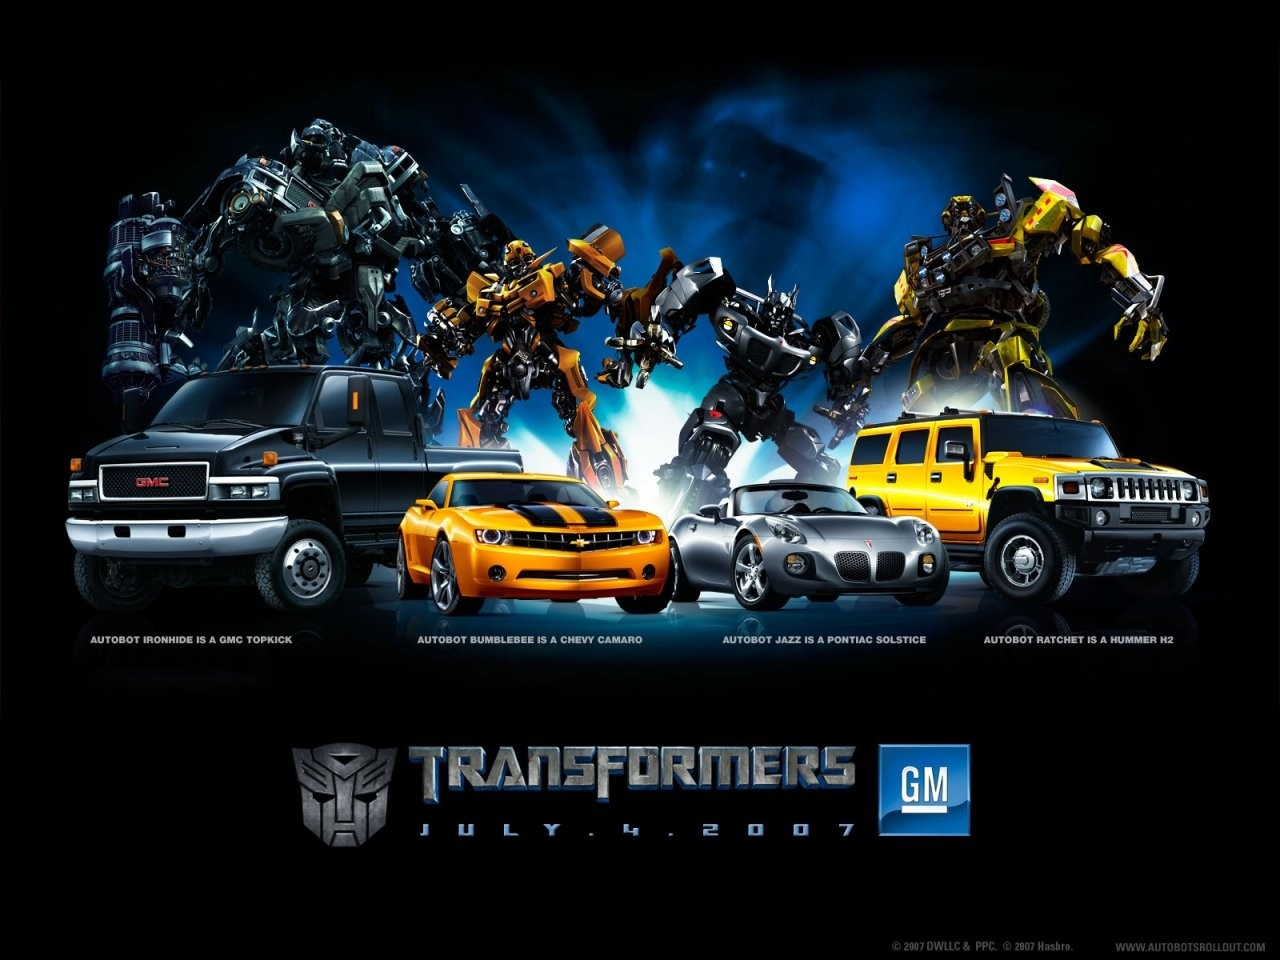 http://www.gtafiles.ucoz.co.uk/FilmPictures/transformers.jpg